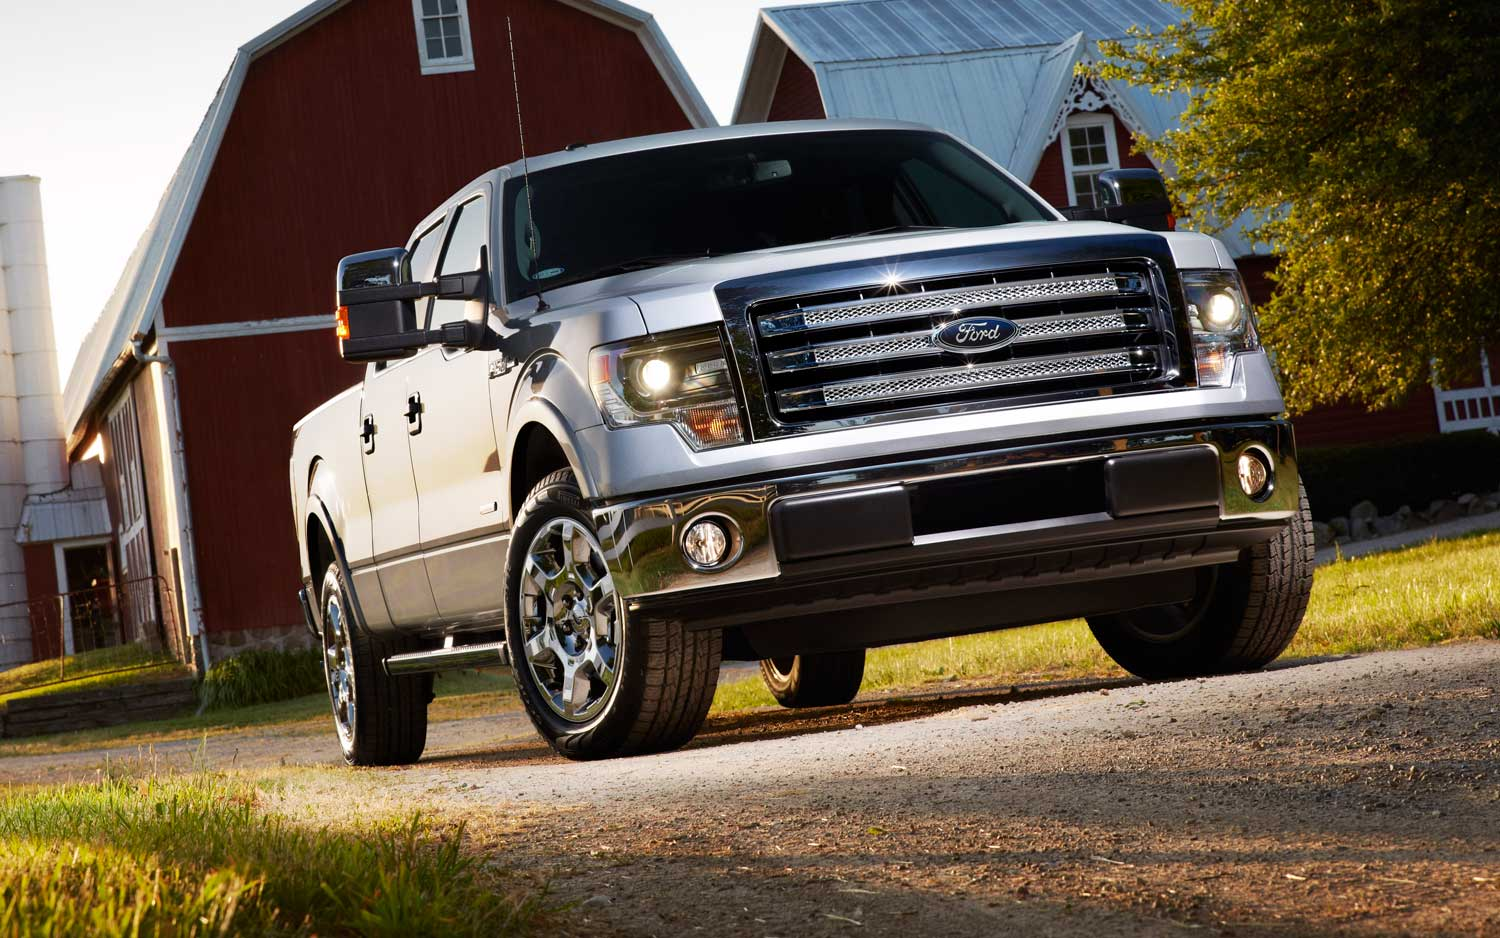 May 2013 Truck Sales: Chevrolet, GMC, Ford, Ram All Show Double-Digit May Gains